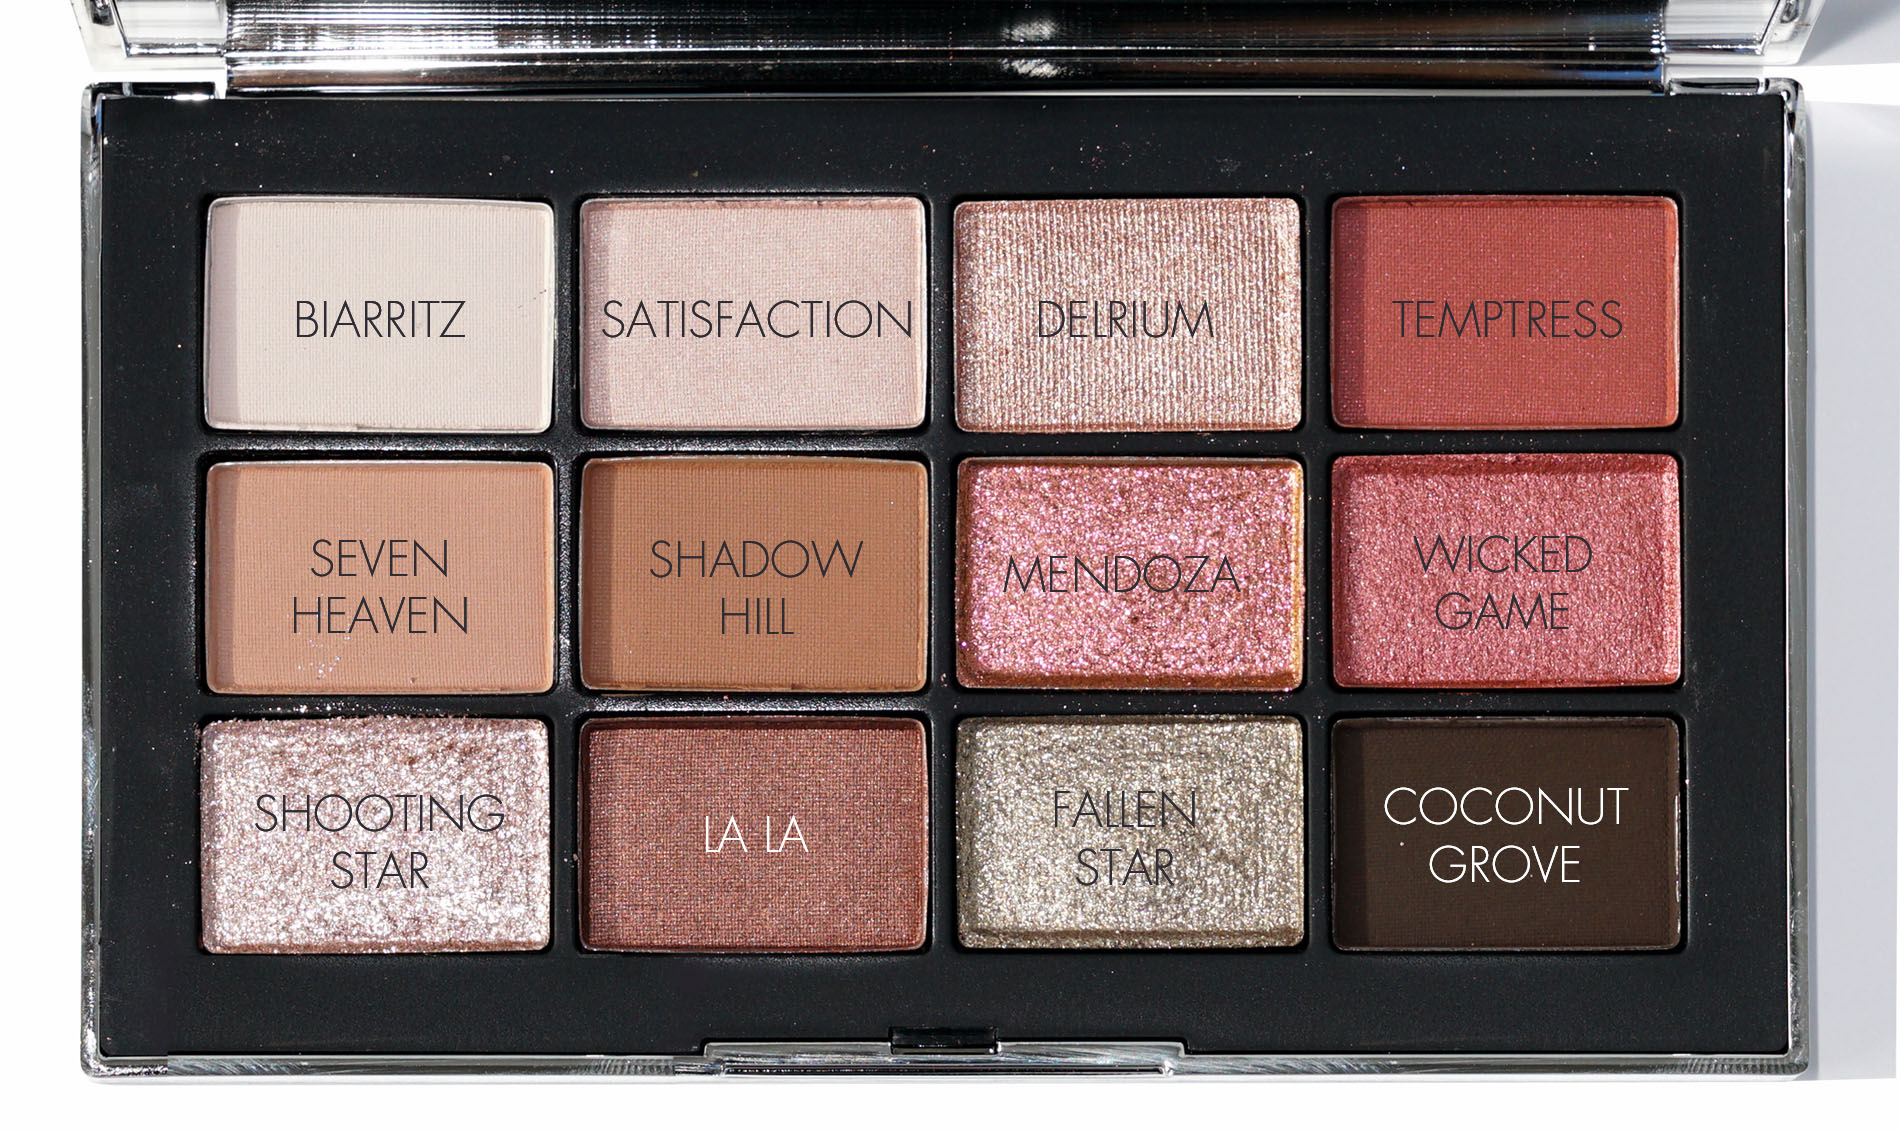 Nars Narsissist Wanted Eyeshadow Palette Review The